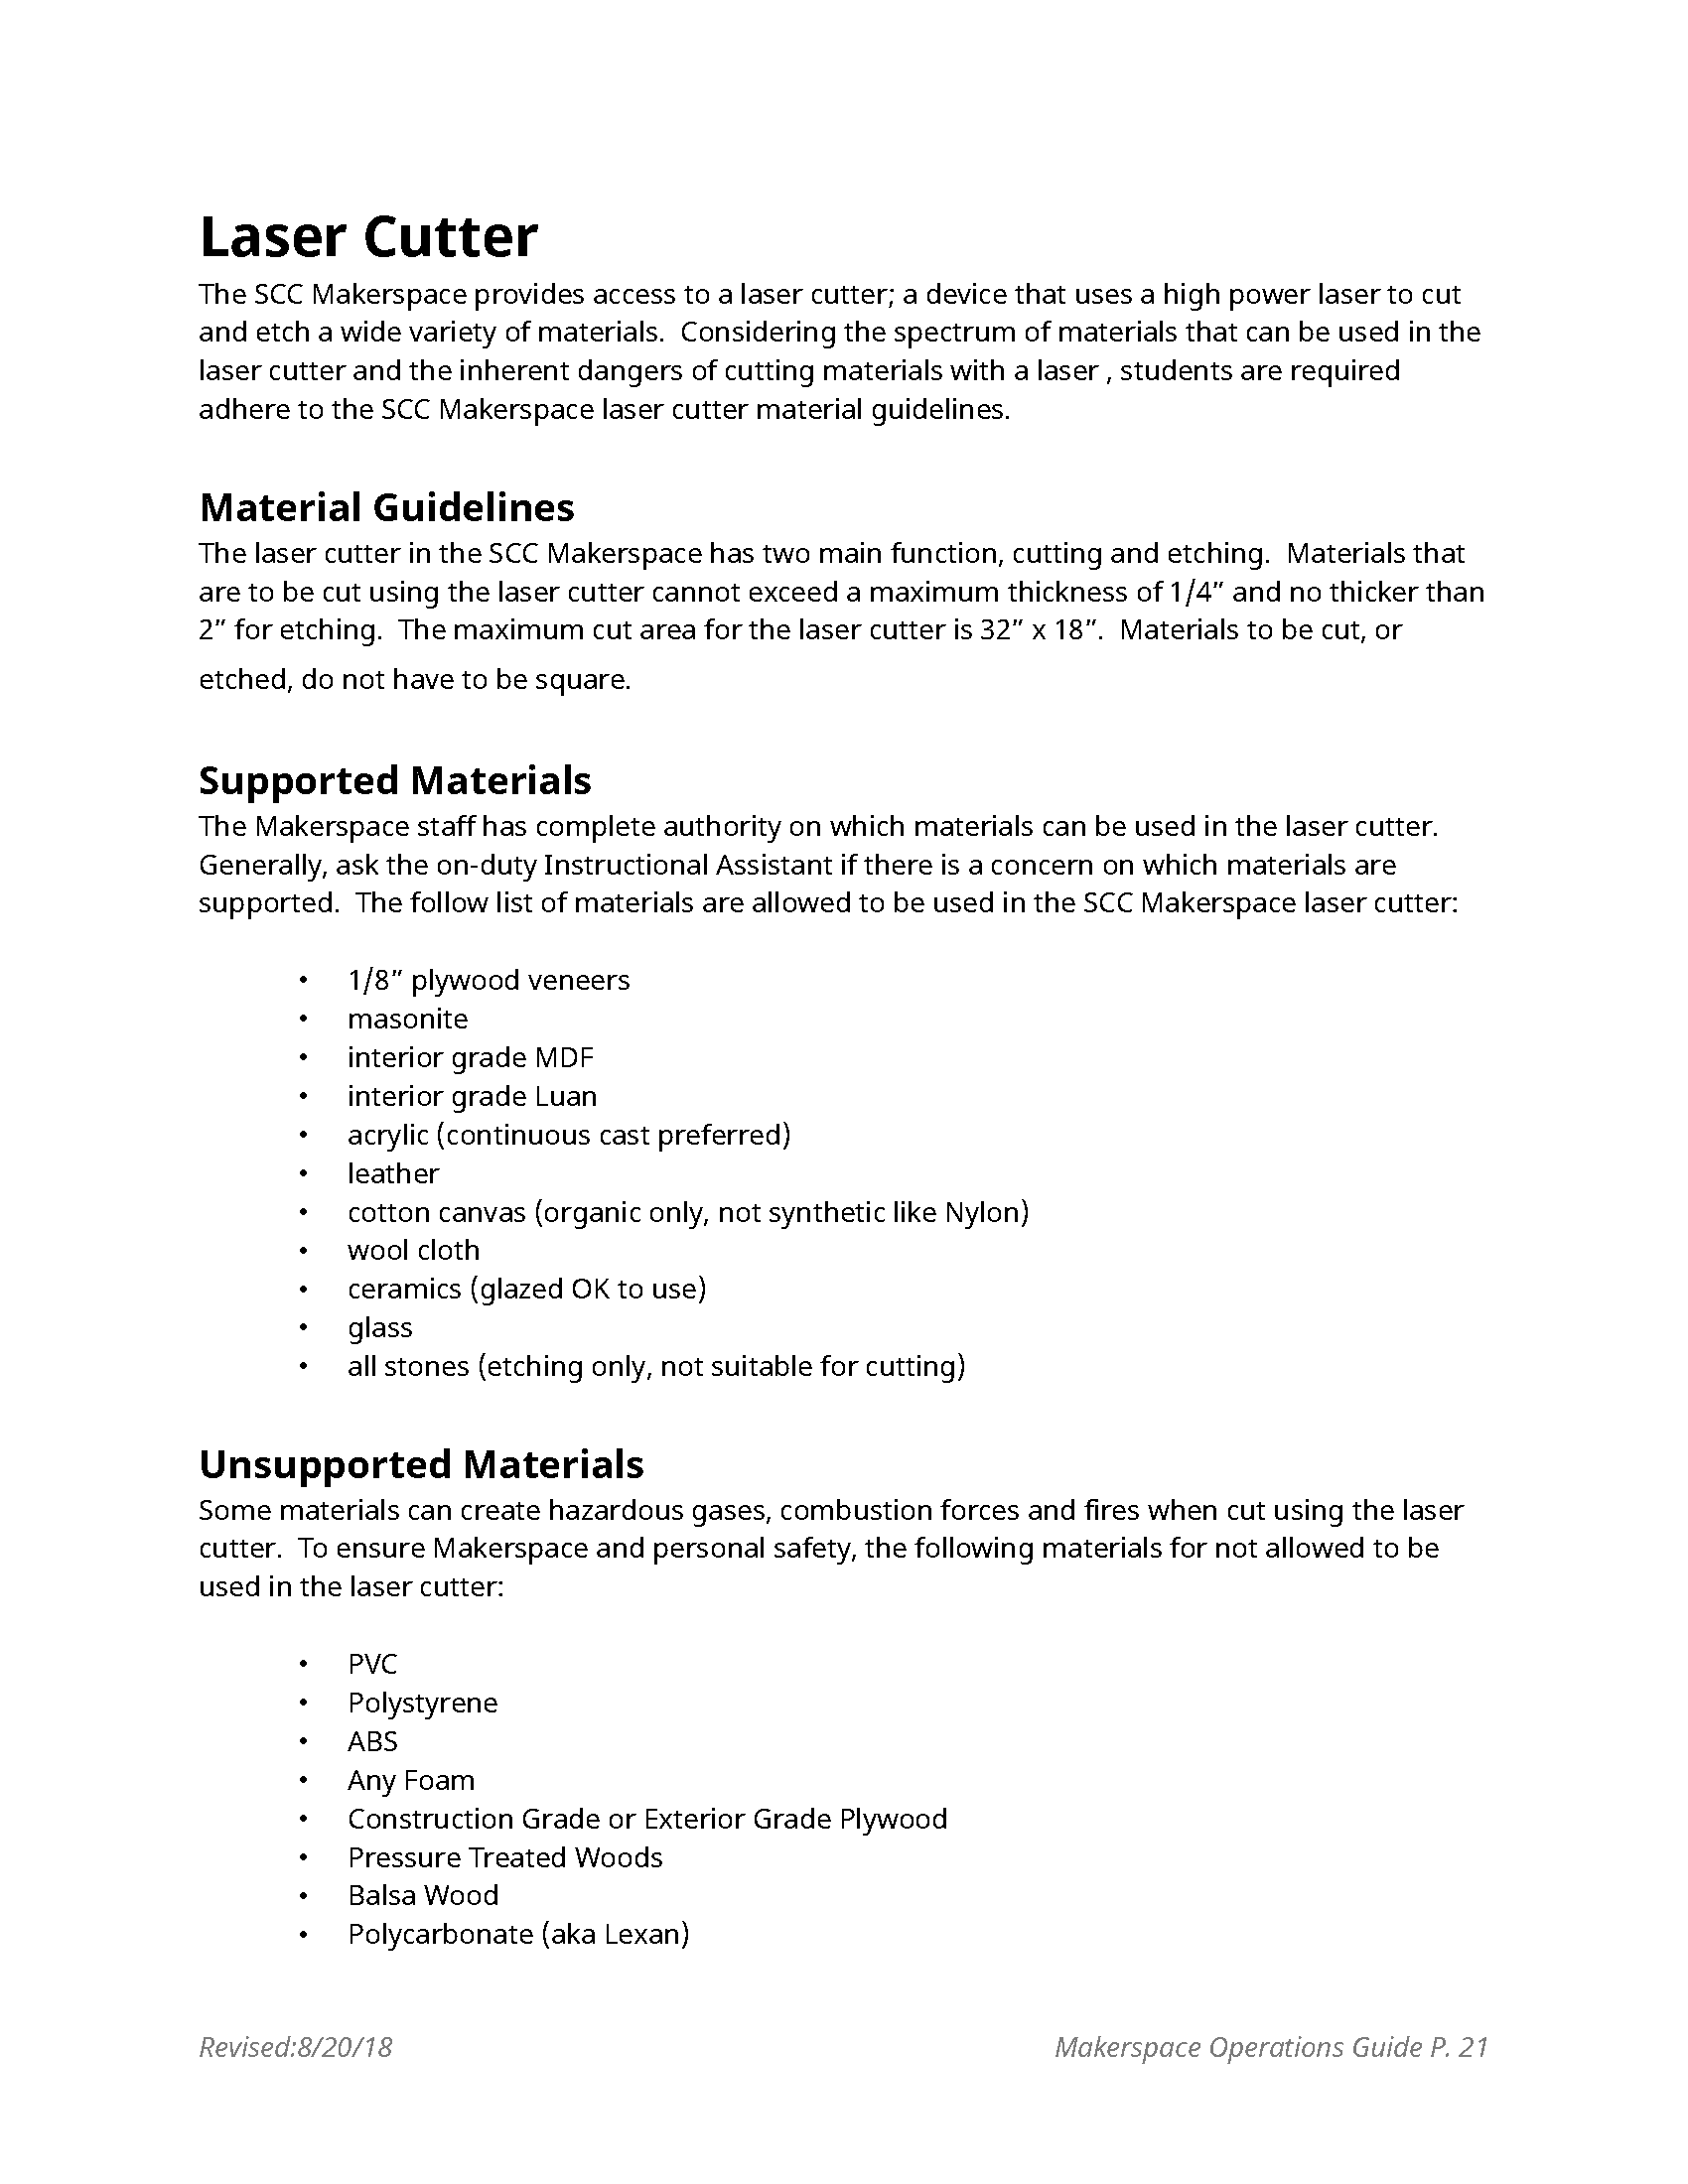 ms_ops_manual_8-20_Page_21.png